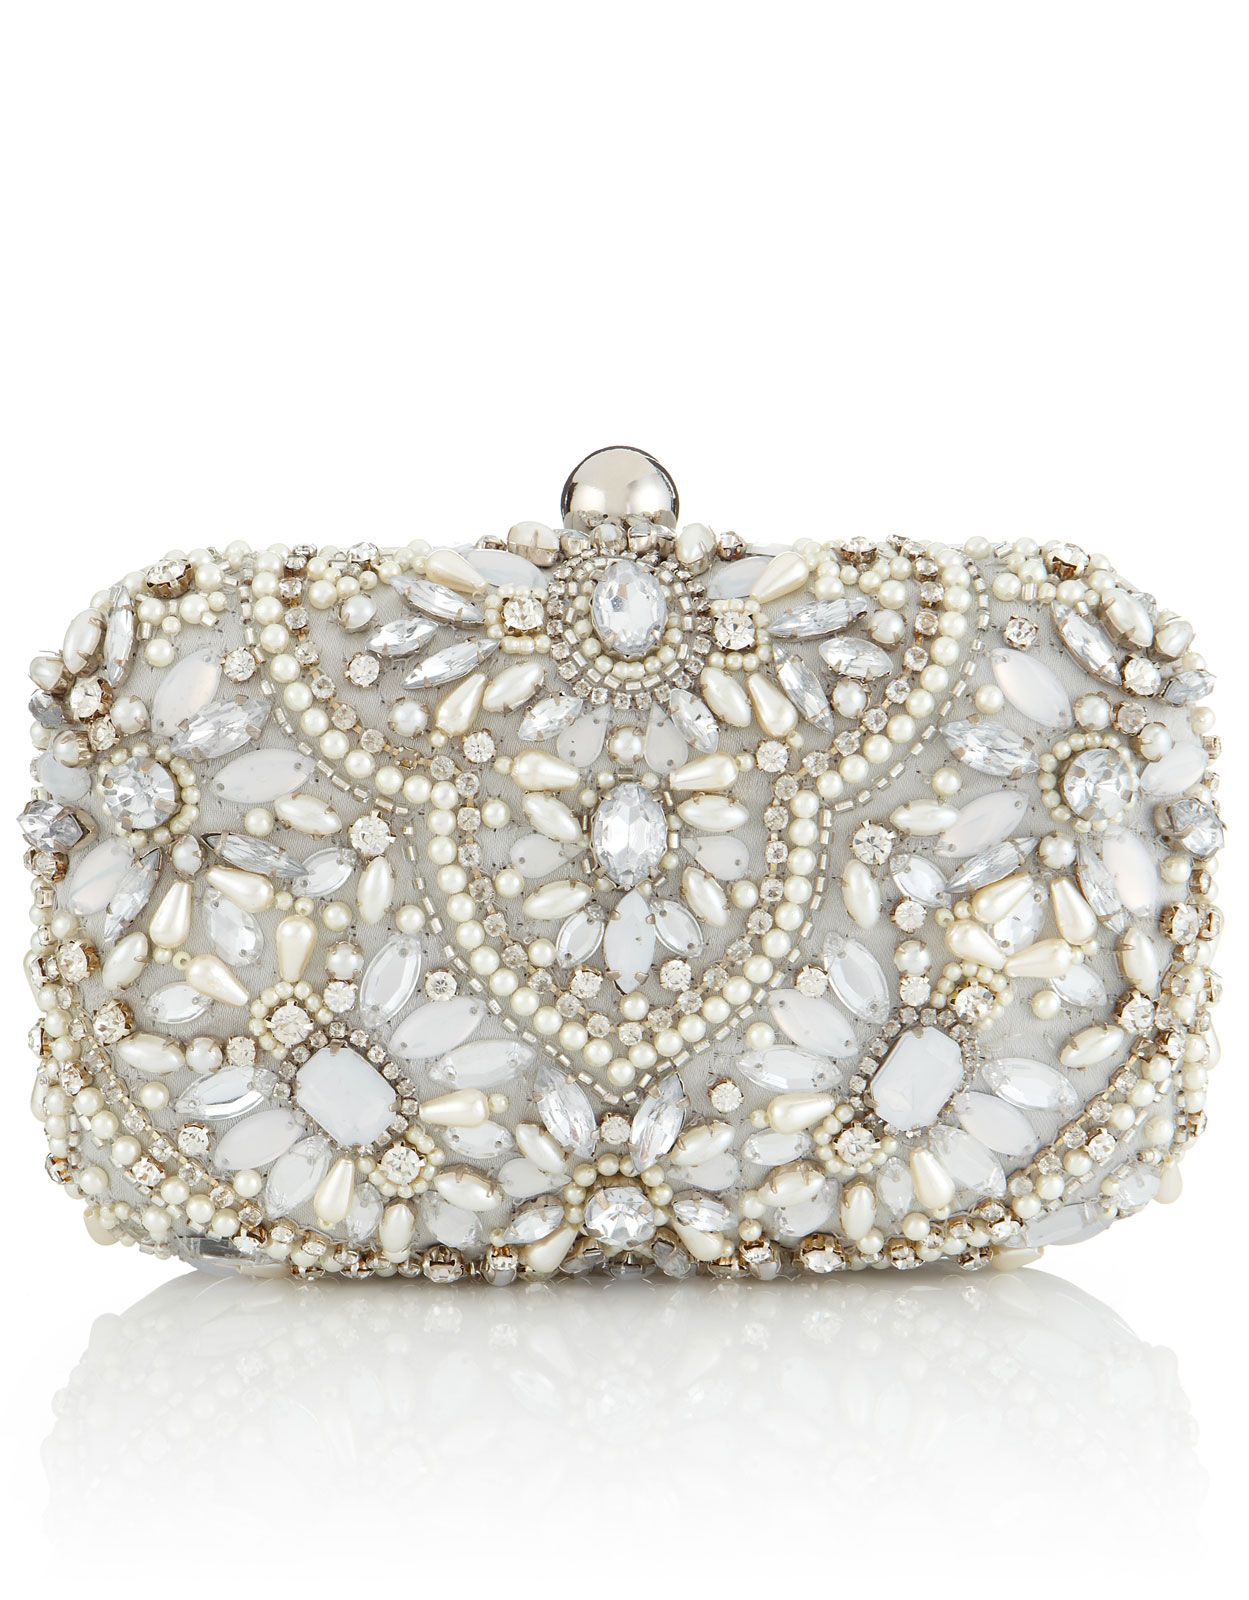 Heavy Embellished Box Clutch Bag Ivory Accessorize In